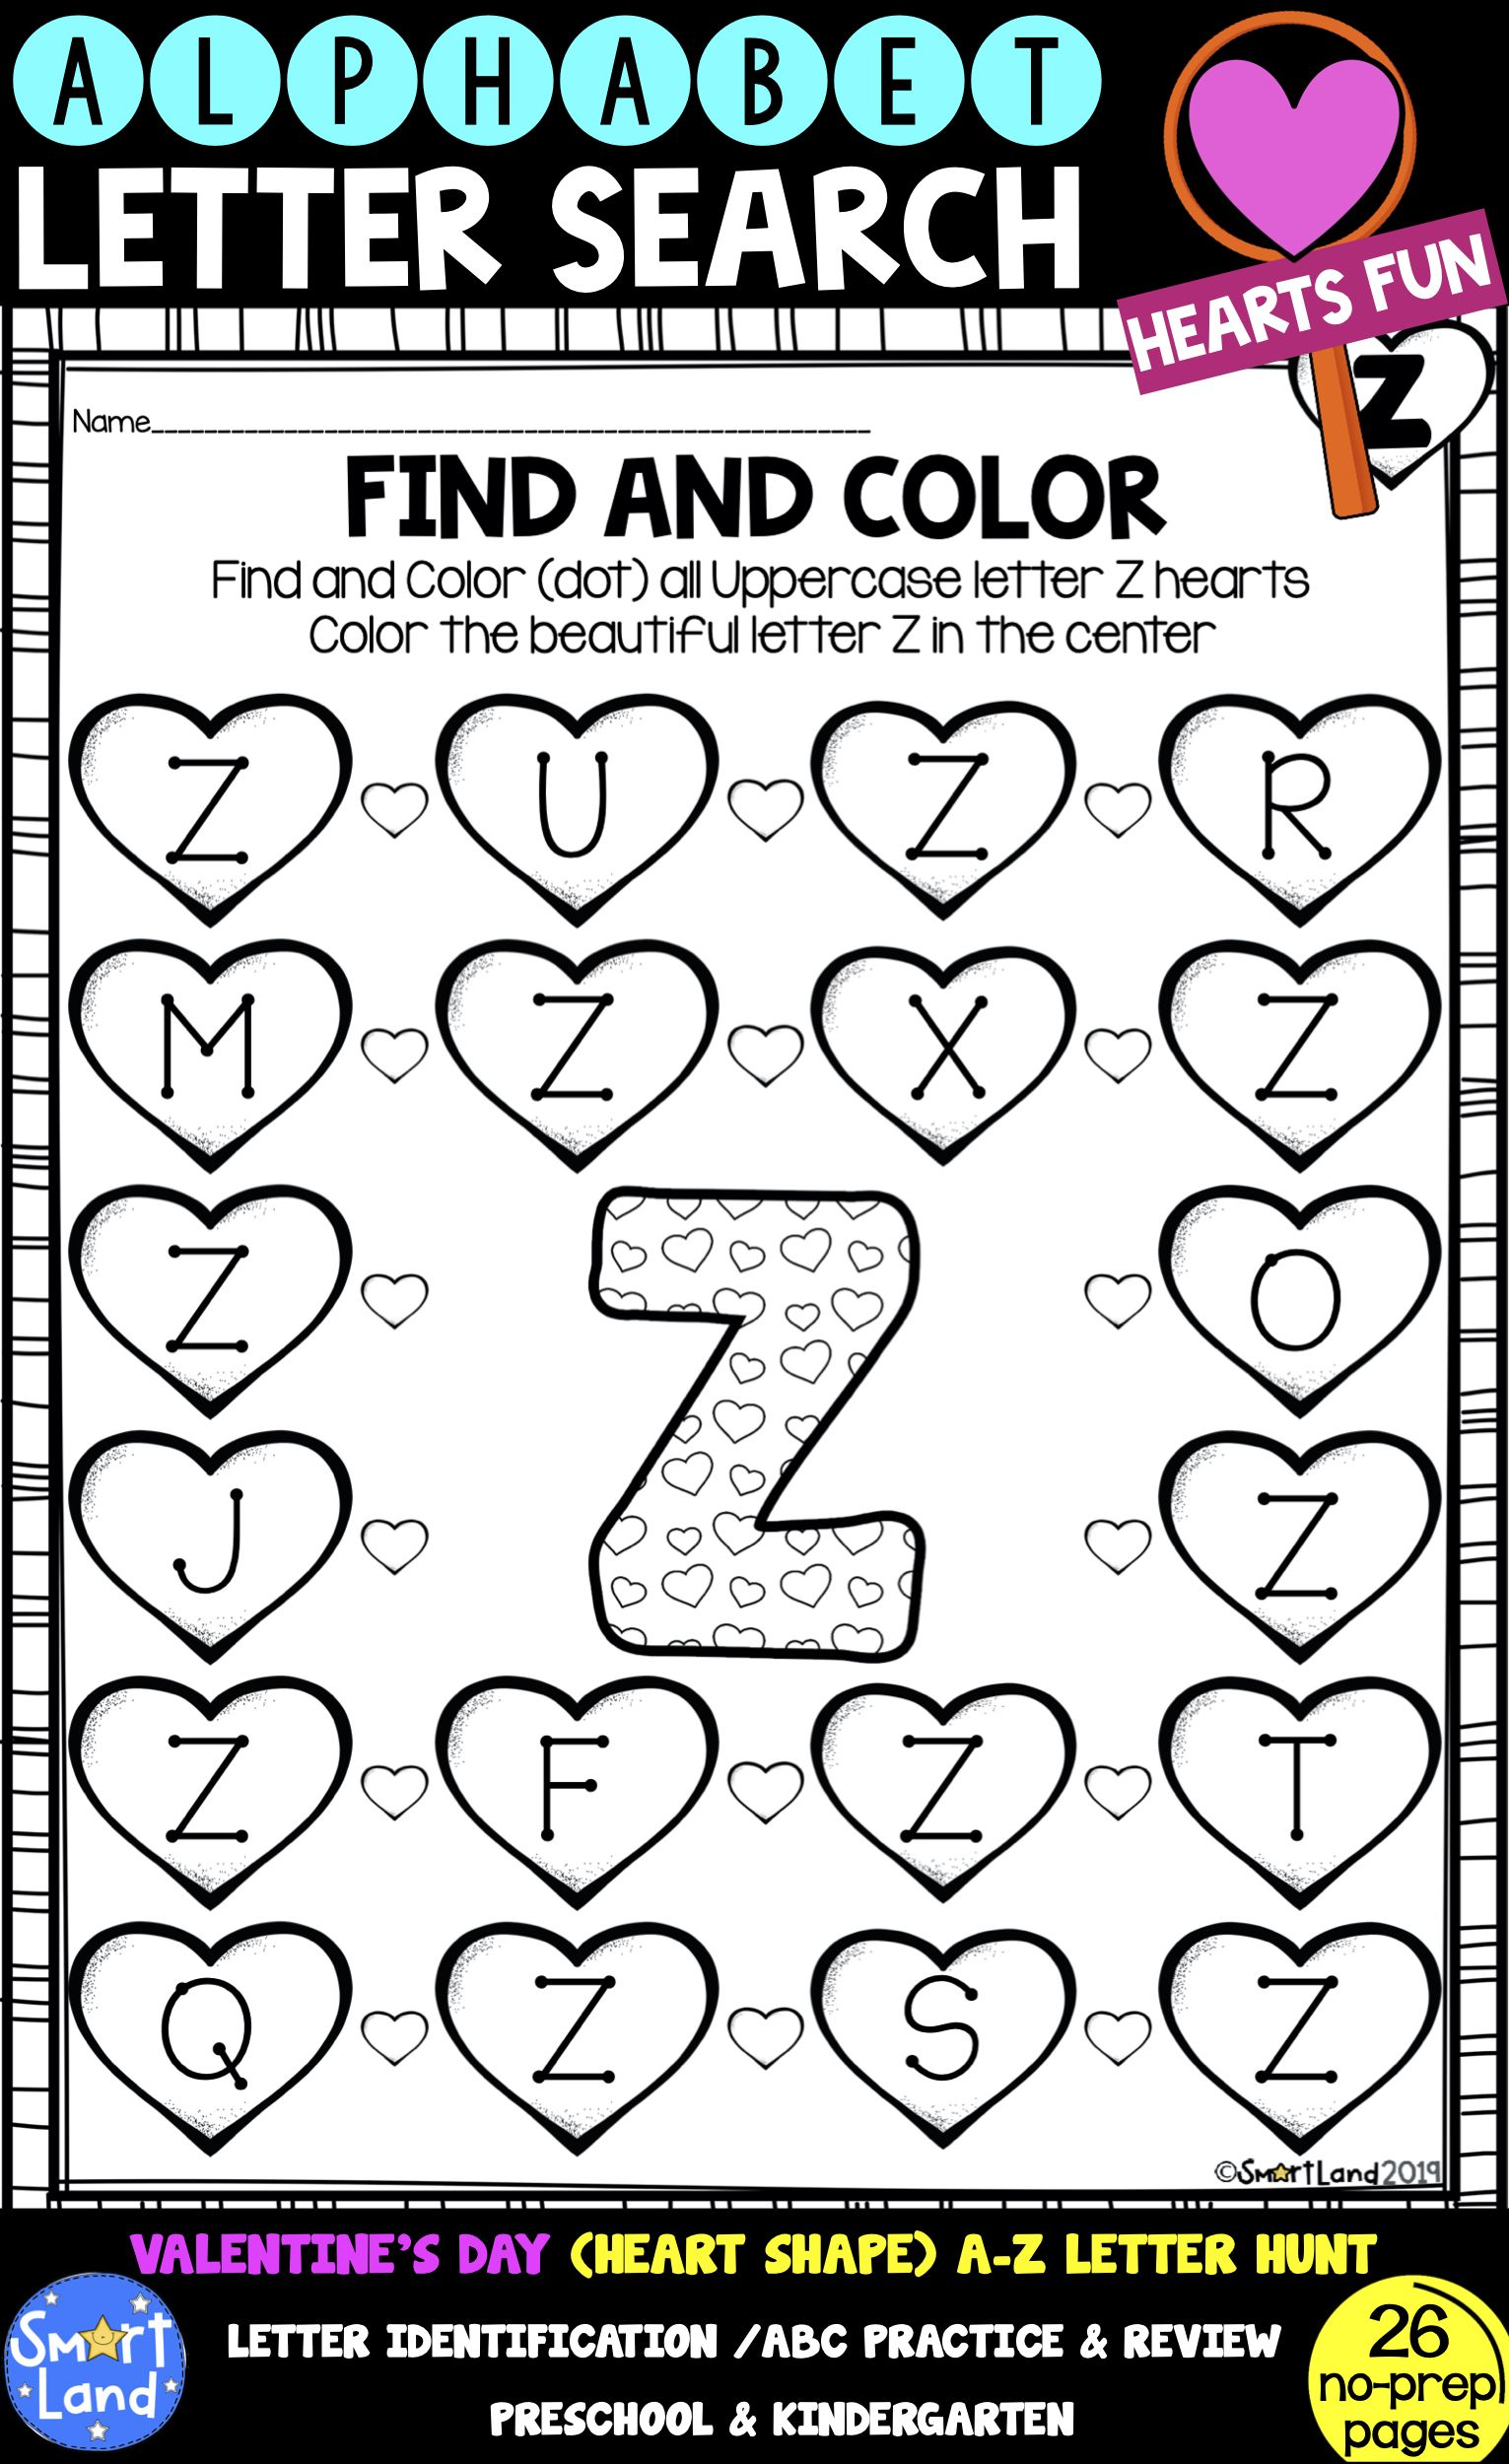 Alphabet Practice Letter Search Hearts